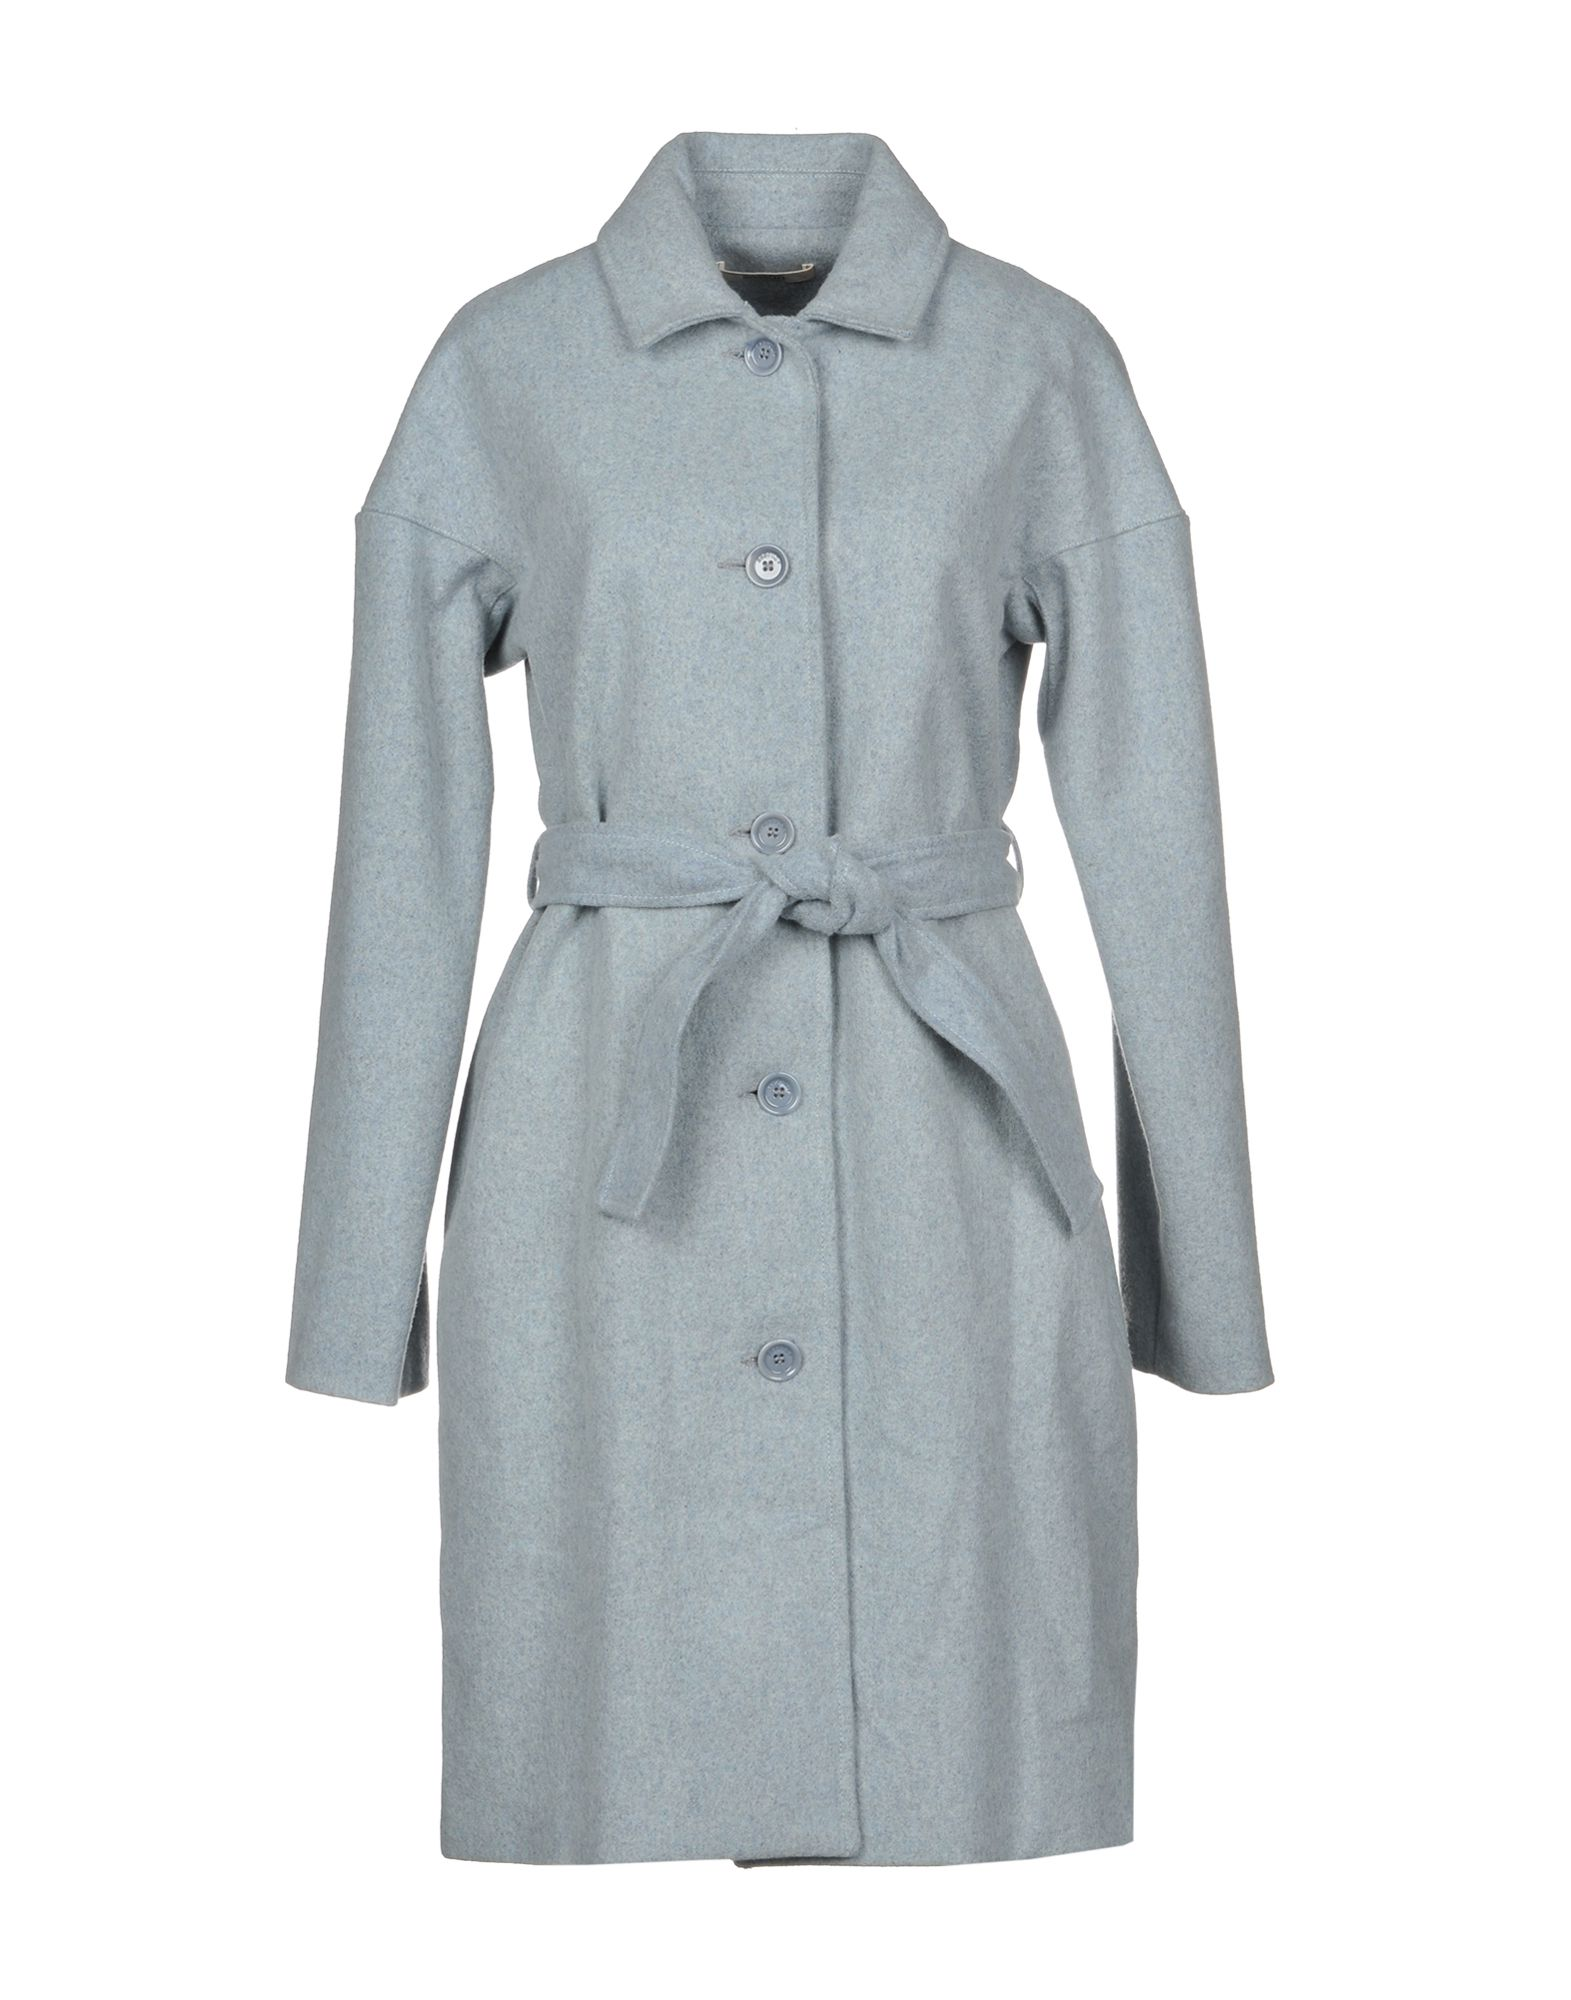 SESSUN Coat in Sky Blue